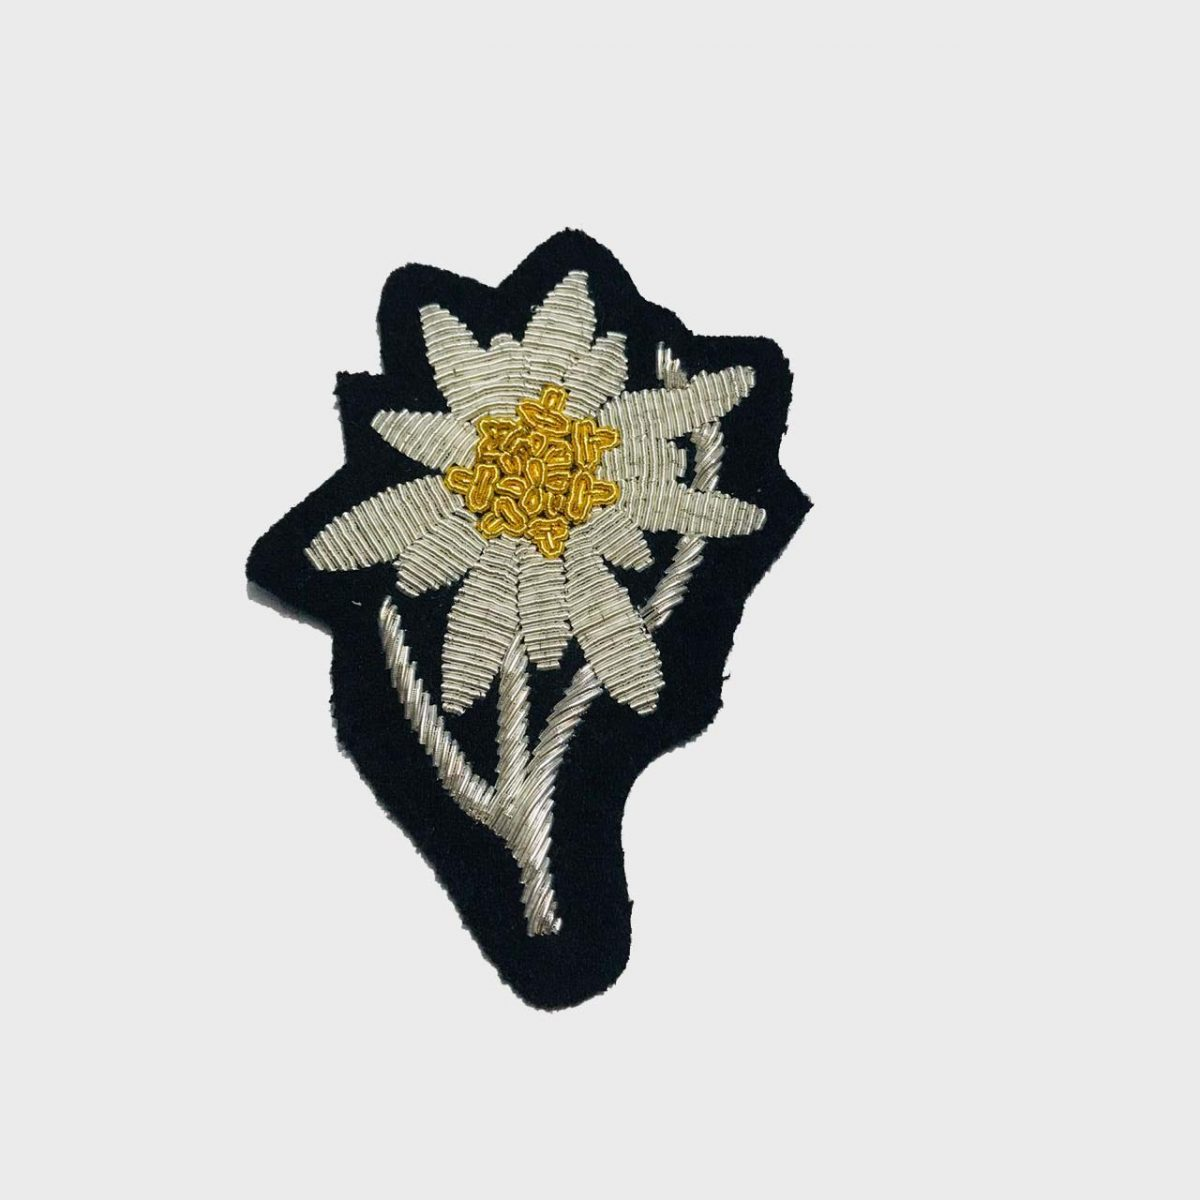 Edelweiss Flower Bullion Embroidered Badge , Sew-on Applique Patch - Edelweiss Embroidered PatchSize # 3 inchesSew-on backingSilver bullion wires embroidered on felt  5